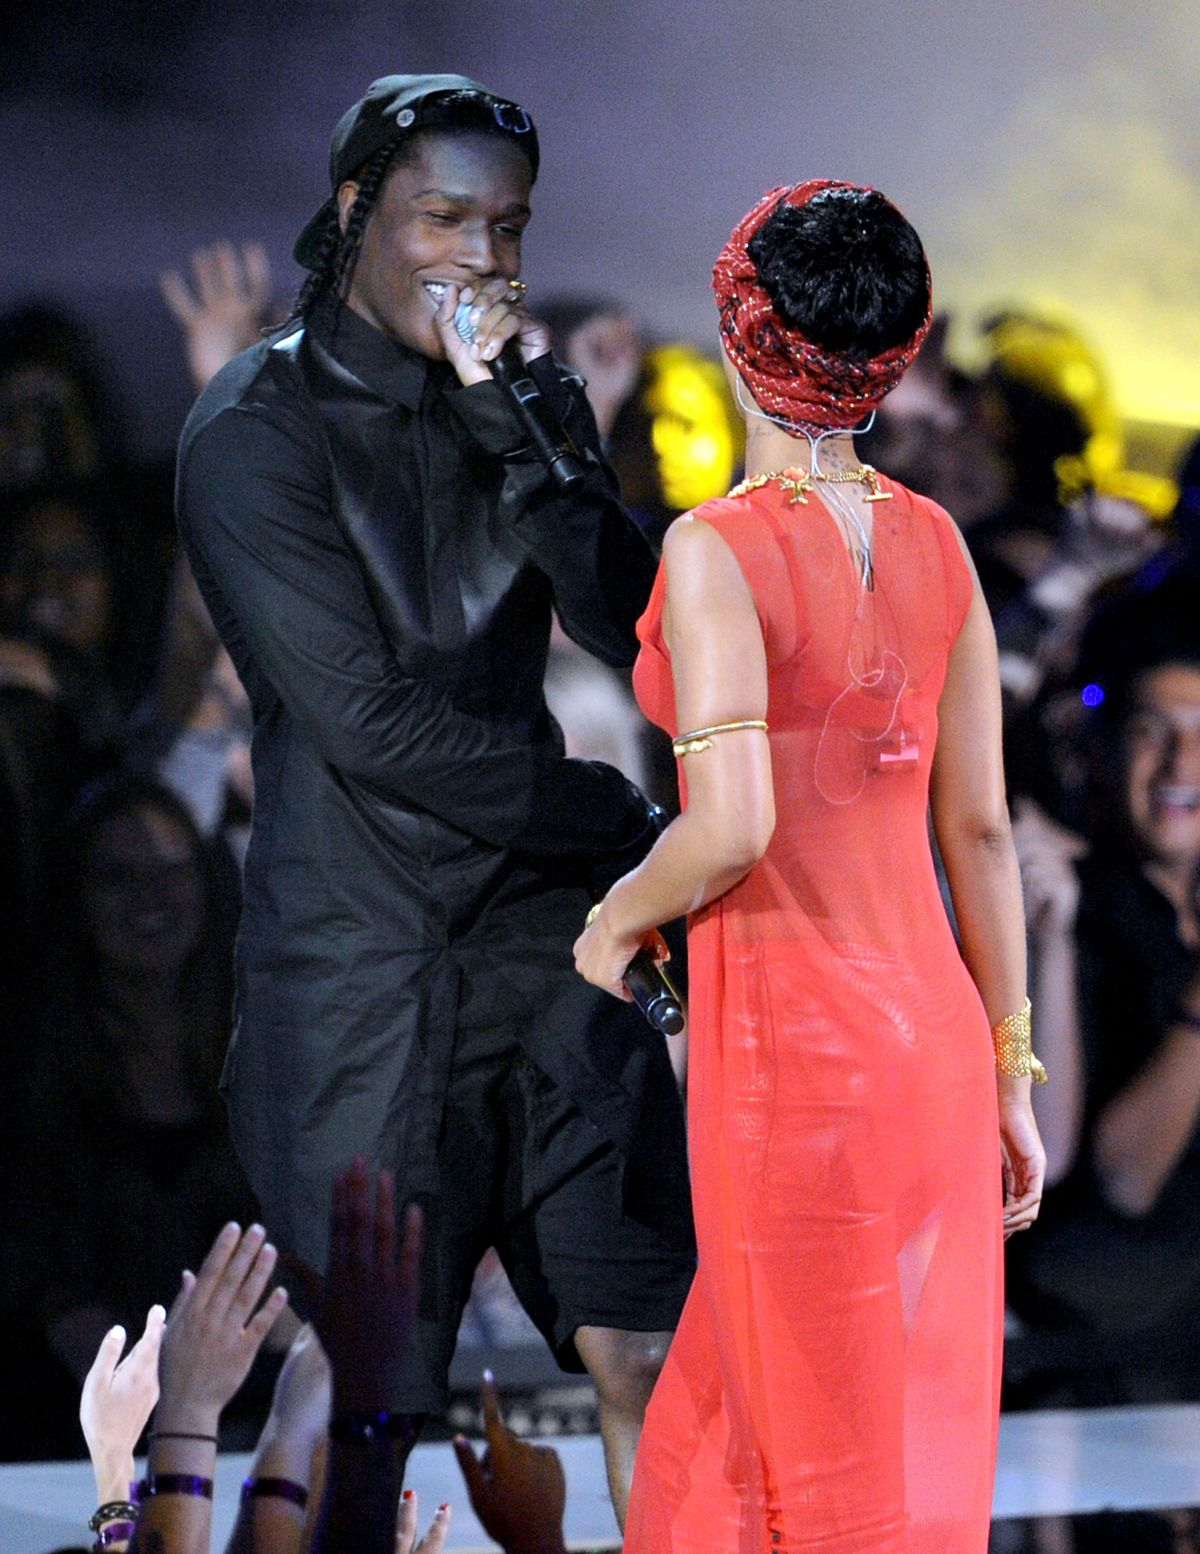 LOS ANGELES, CA - SEPTEMBER 06: Singer Rihanna (R) and rapper A$AP Rocky perform onstage during the 2012 MTV Video Music Awards at Staples Center on September 6, 2012 in Los Angeles, California. (Photo by Kevin Winter/Getty Images)